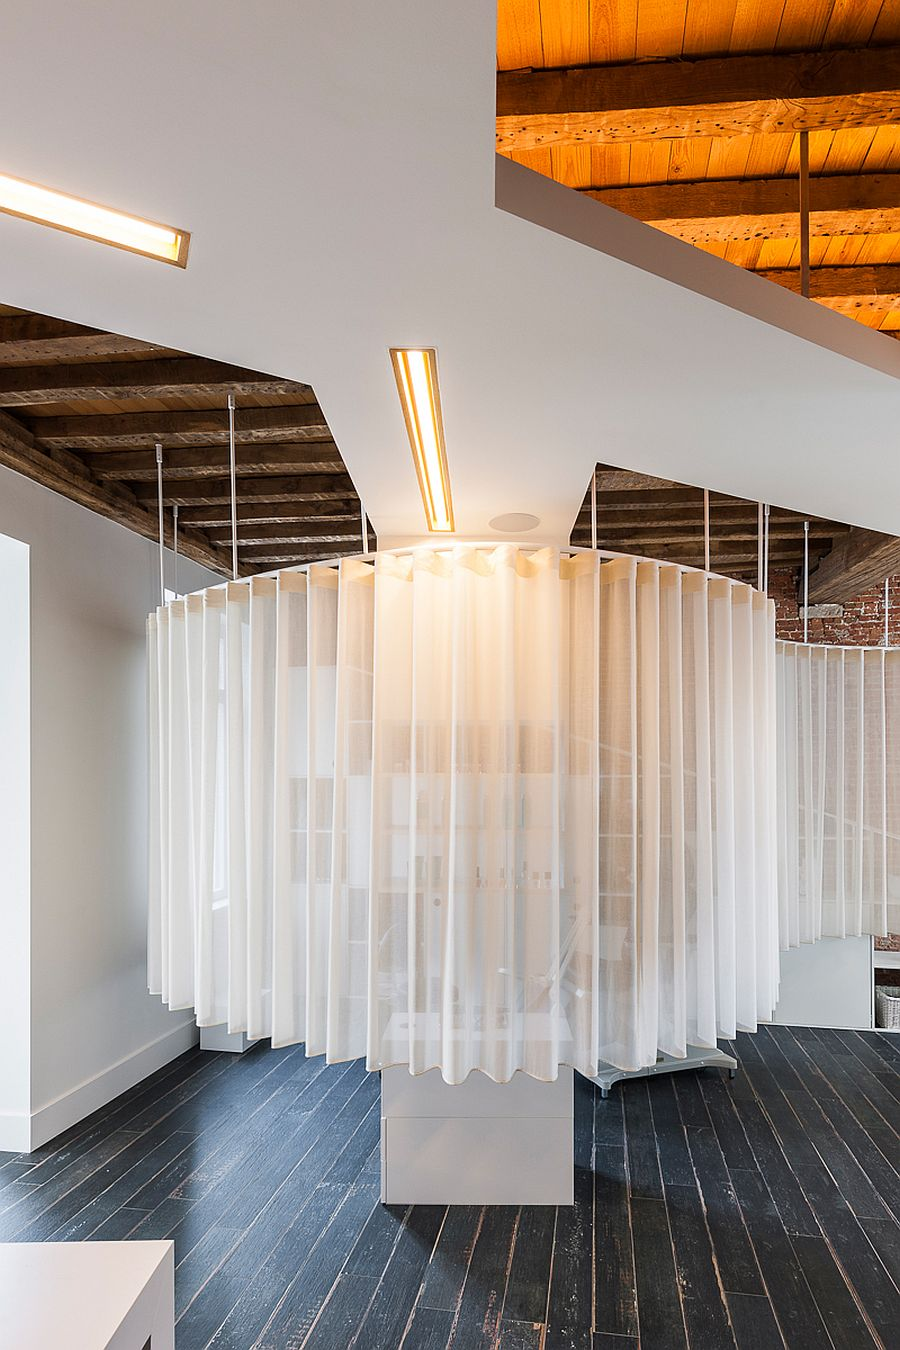 White ceiling, lighting with golden glint and smart design transform the industrial space